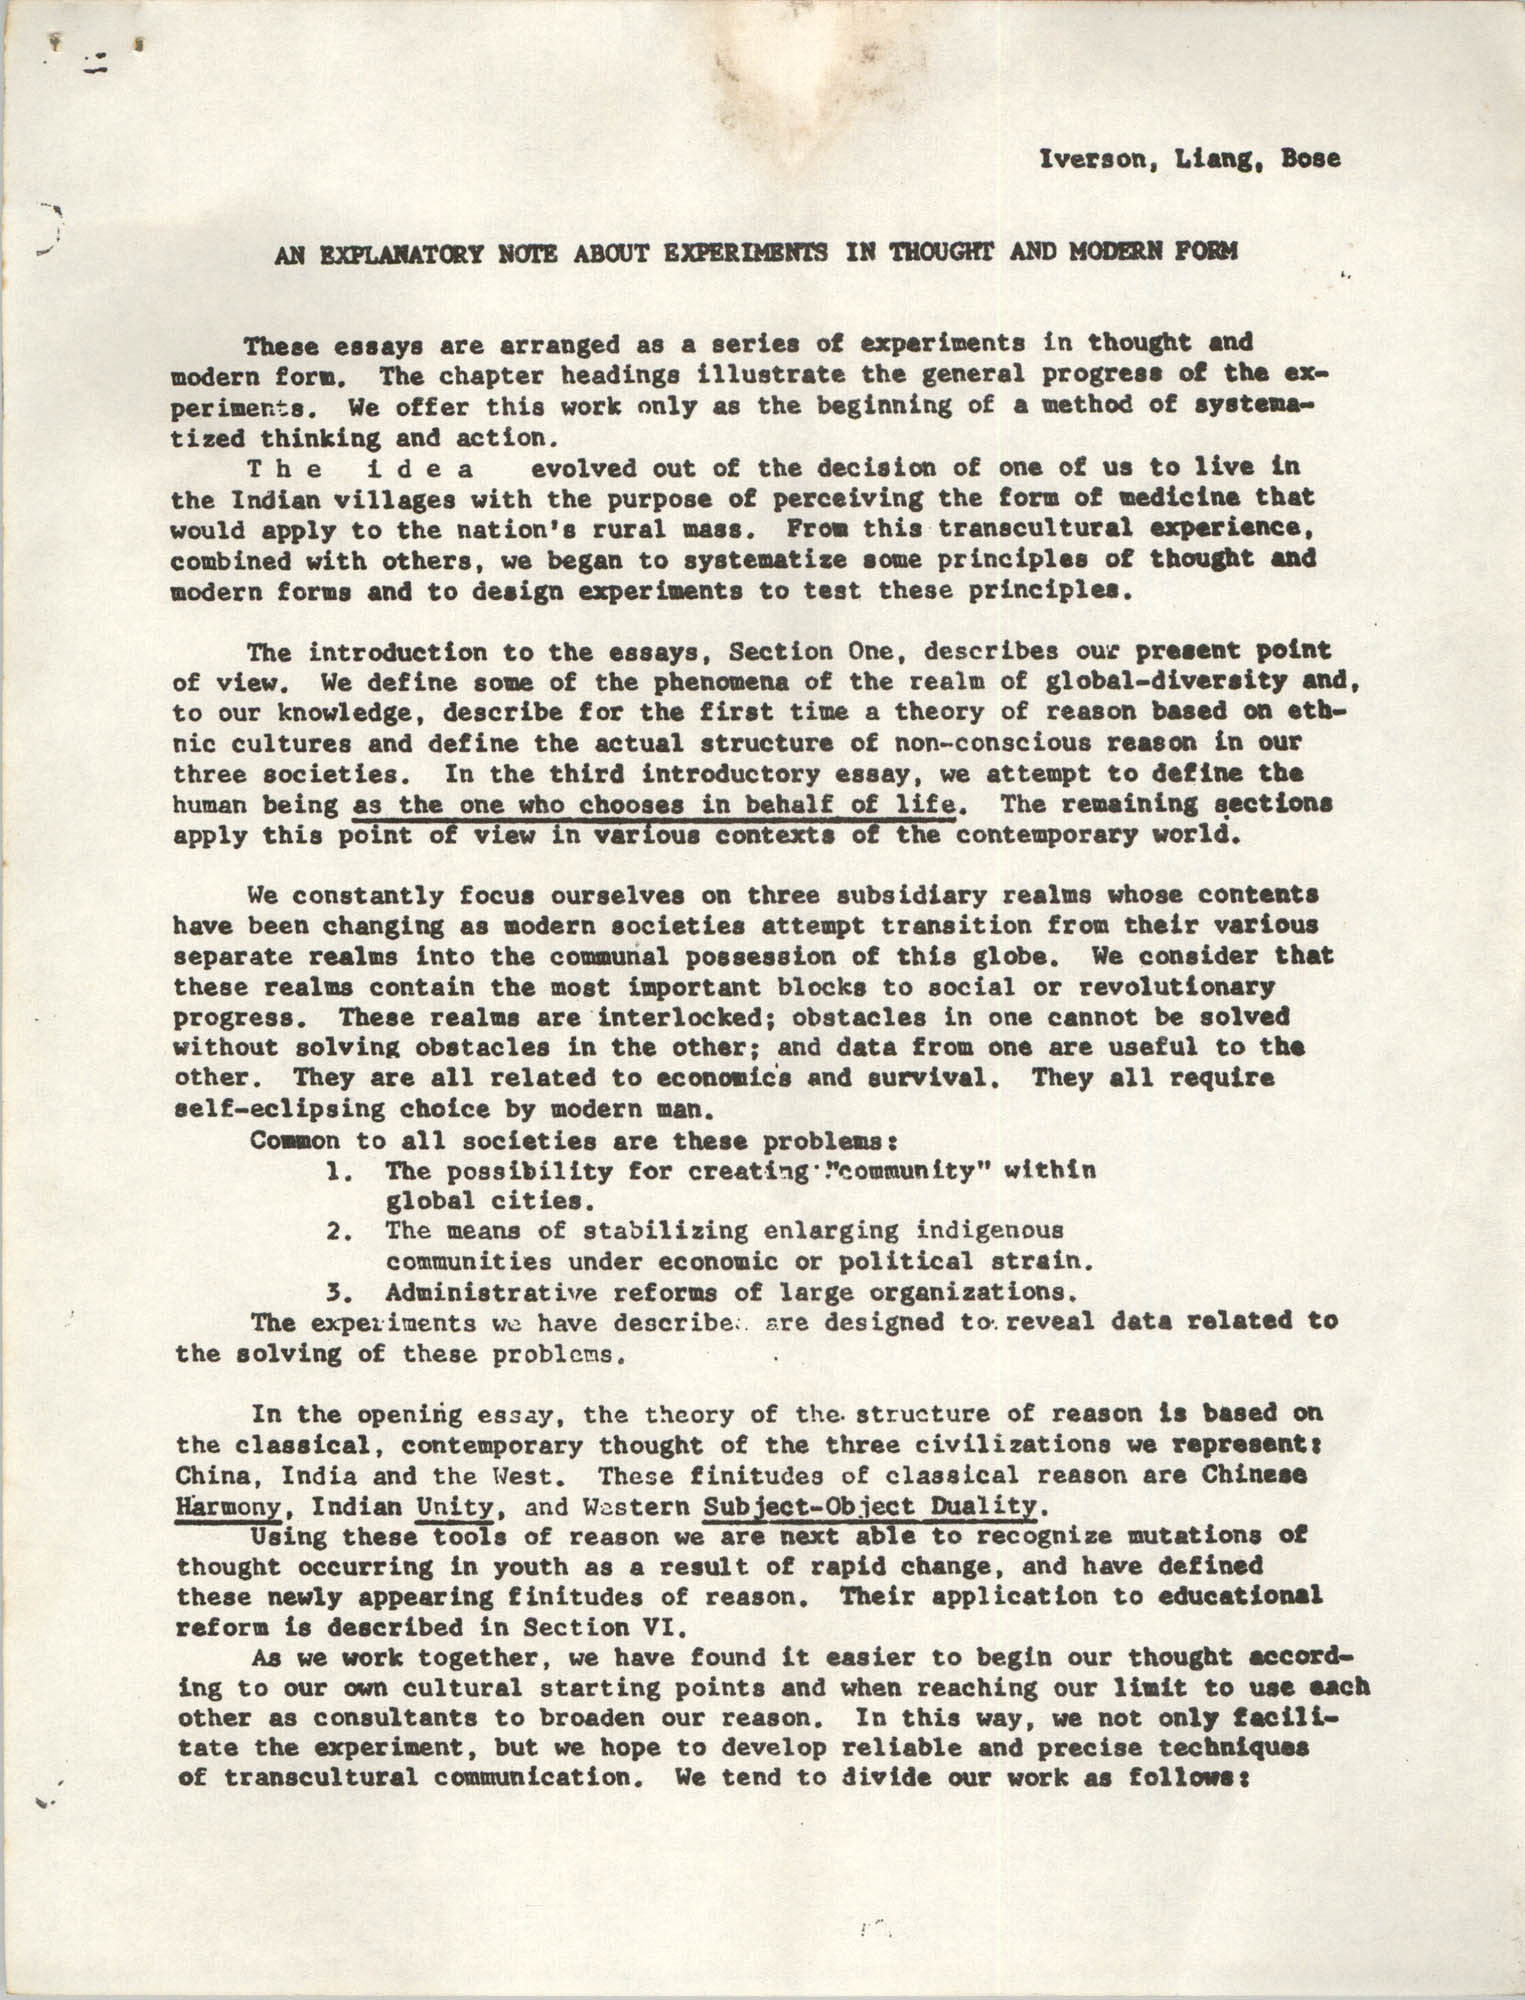 An Explanatory Note About Experiments in Thought and Modern Form, Page 1